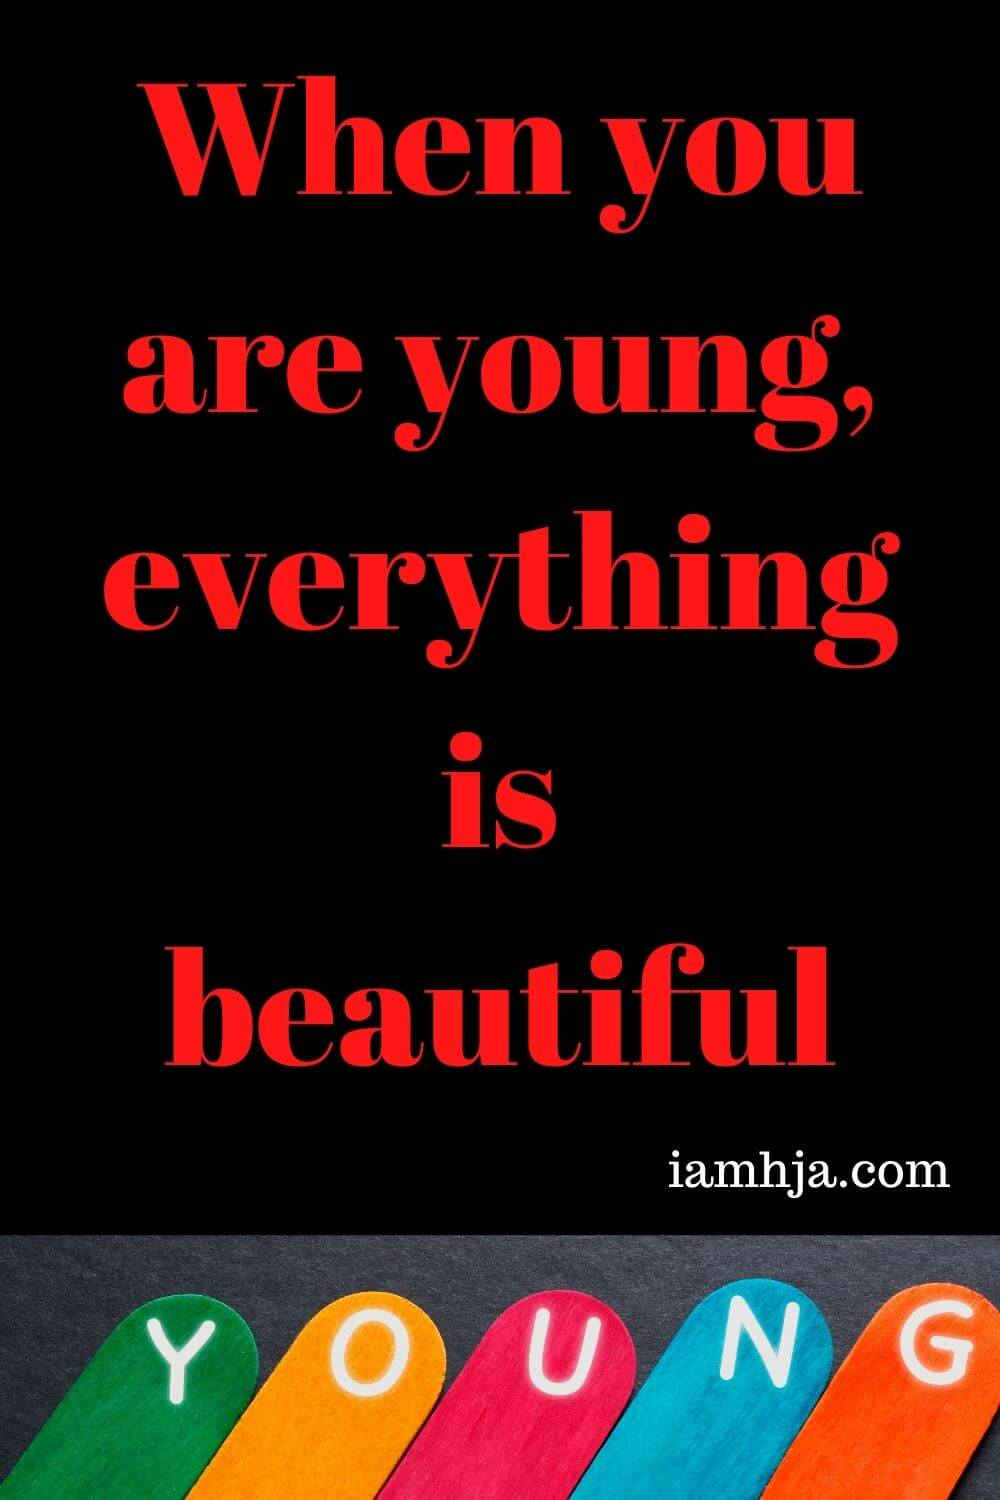 When you are young, everything is beautiful